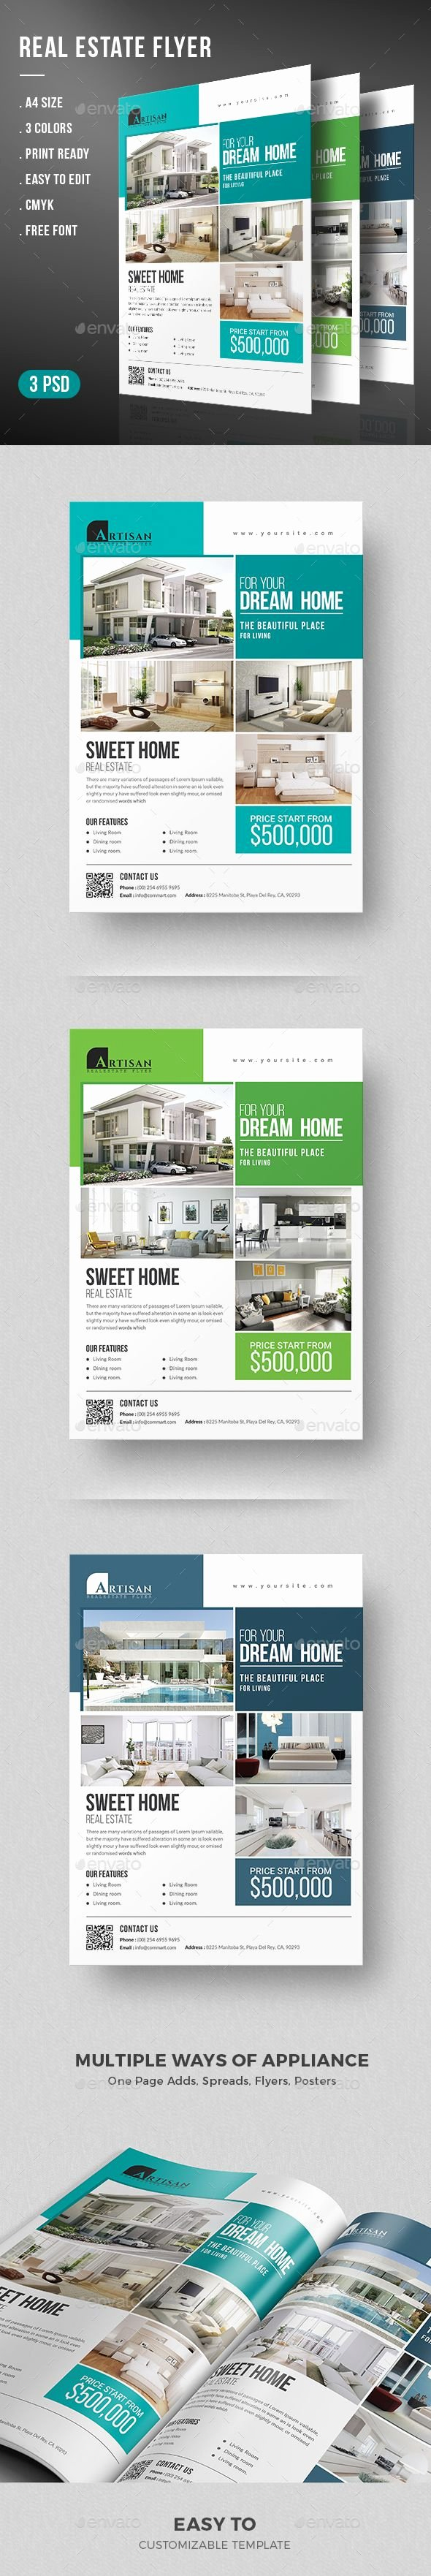 Real Estate Flyer Ideas Fresh 25 Best Ideas About Real Estate Flyers On Pinterest